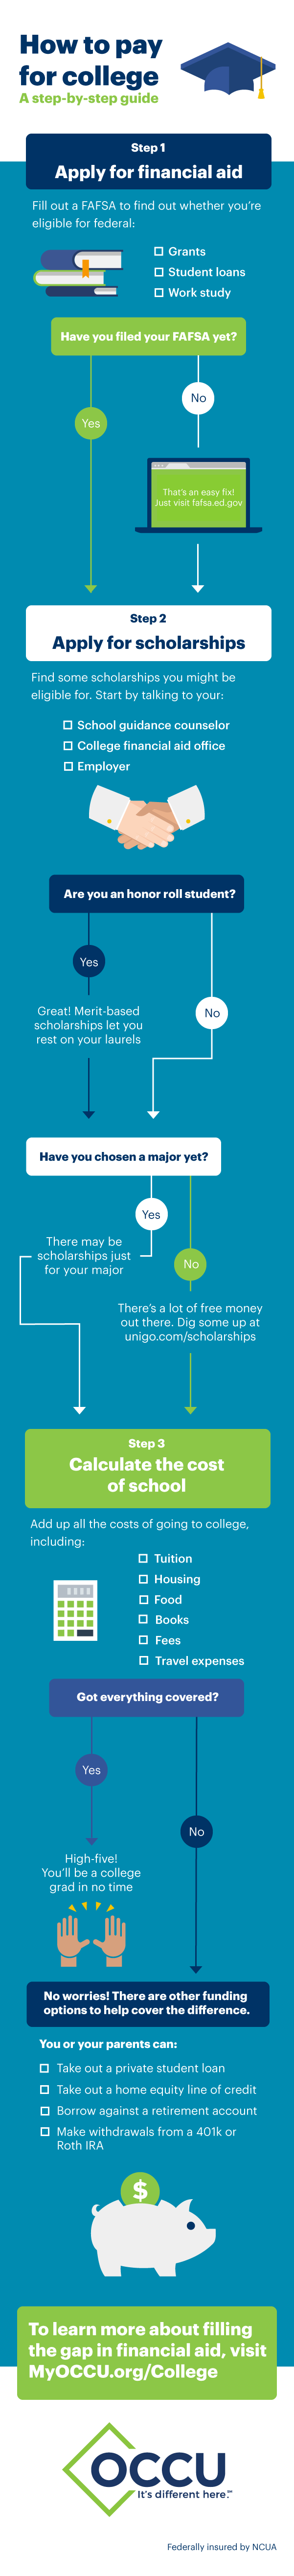 how will you pay for college? | oregon community credit union